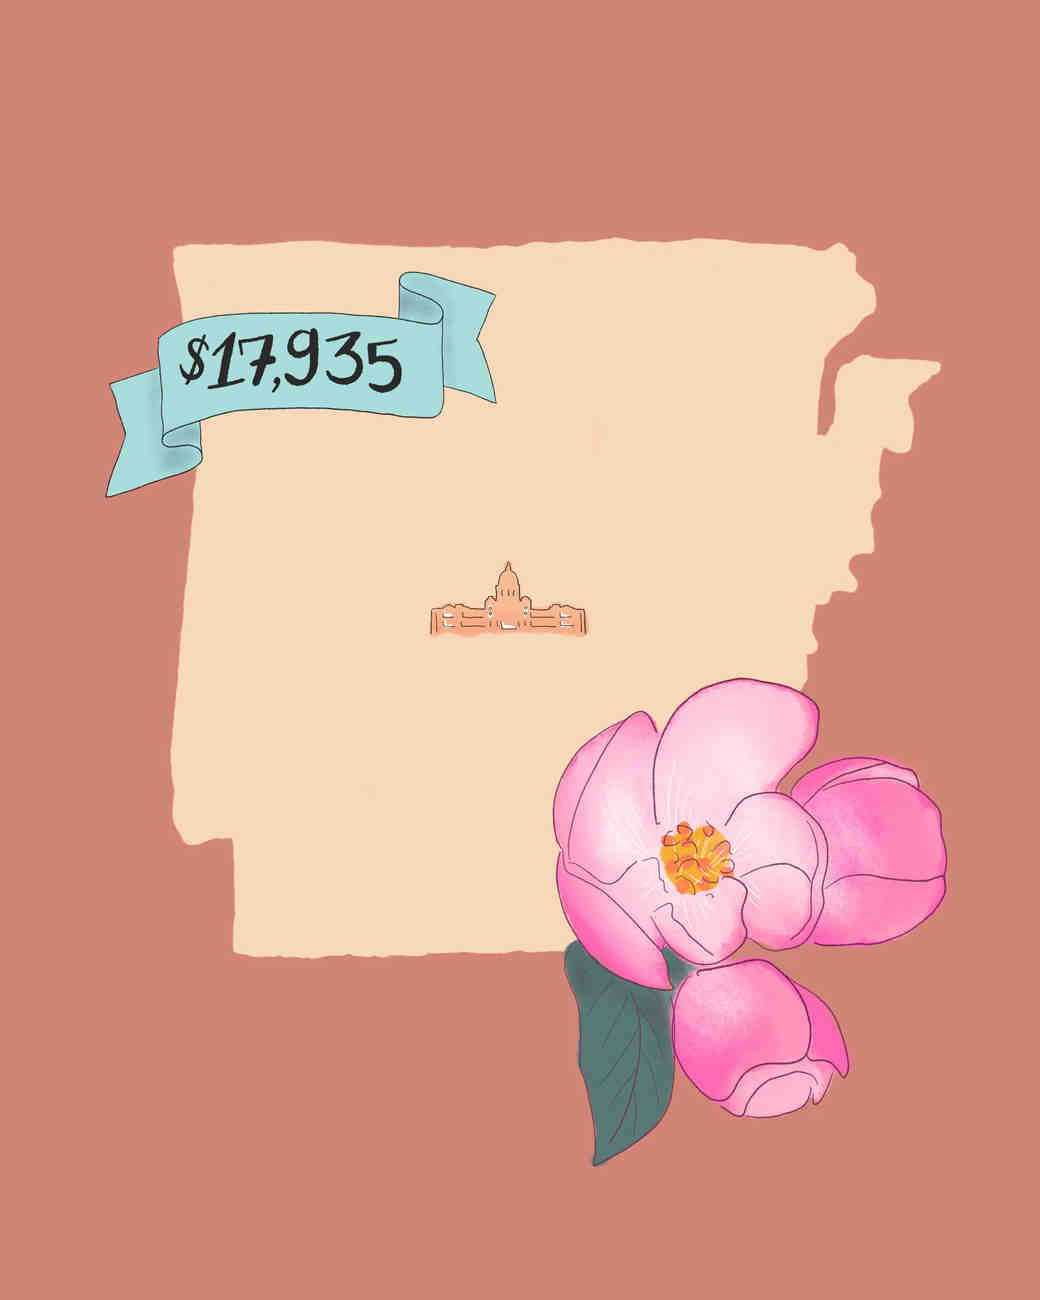 state wedding costs illustration arkansas